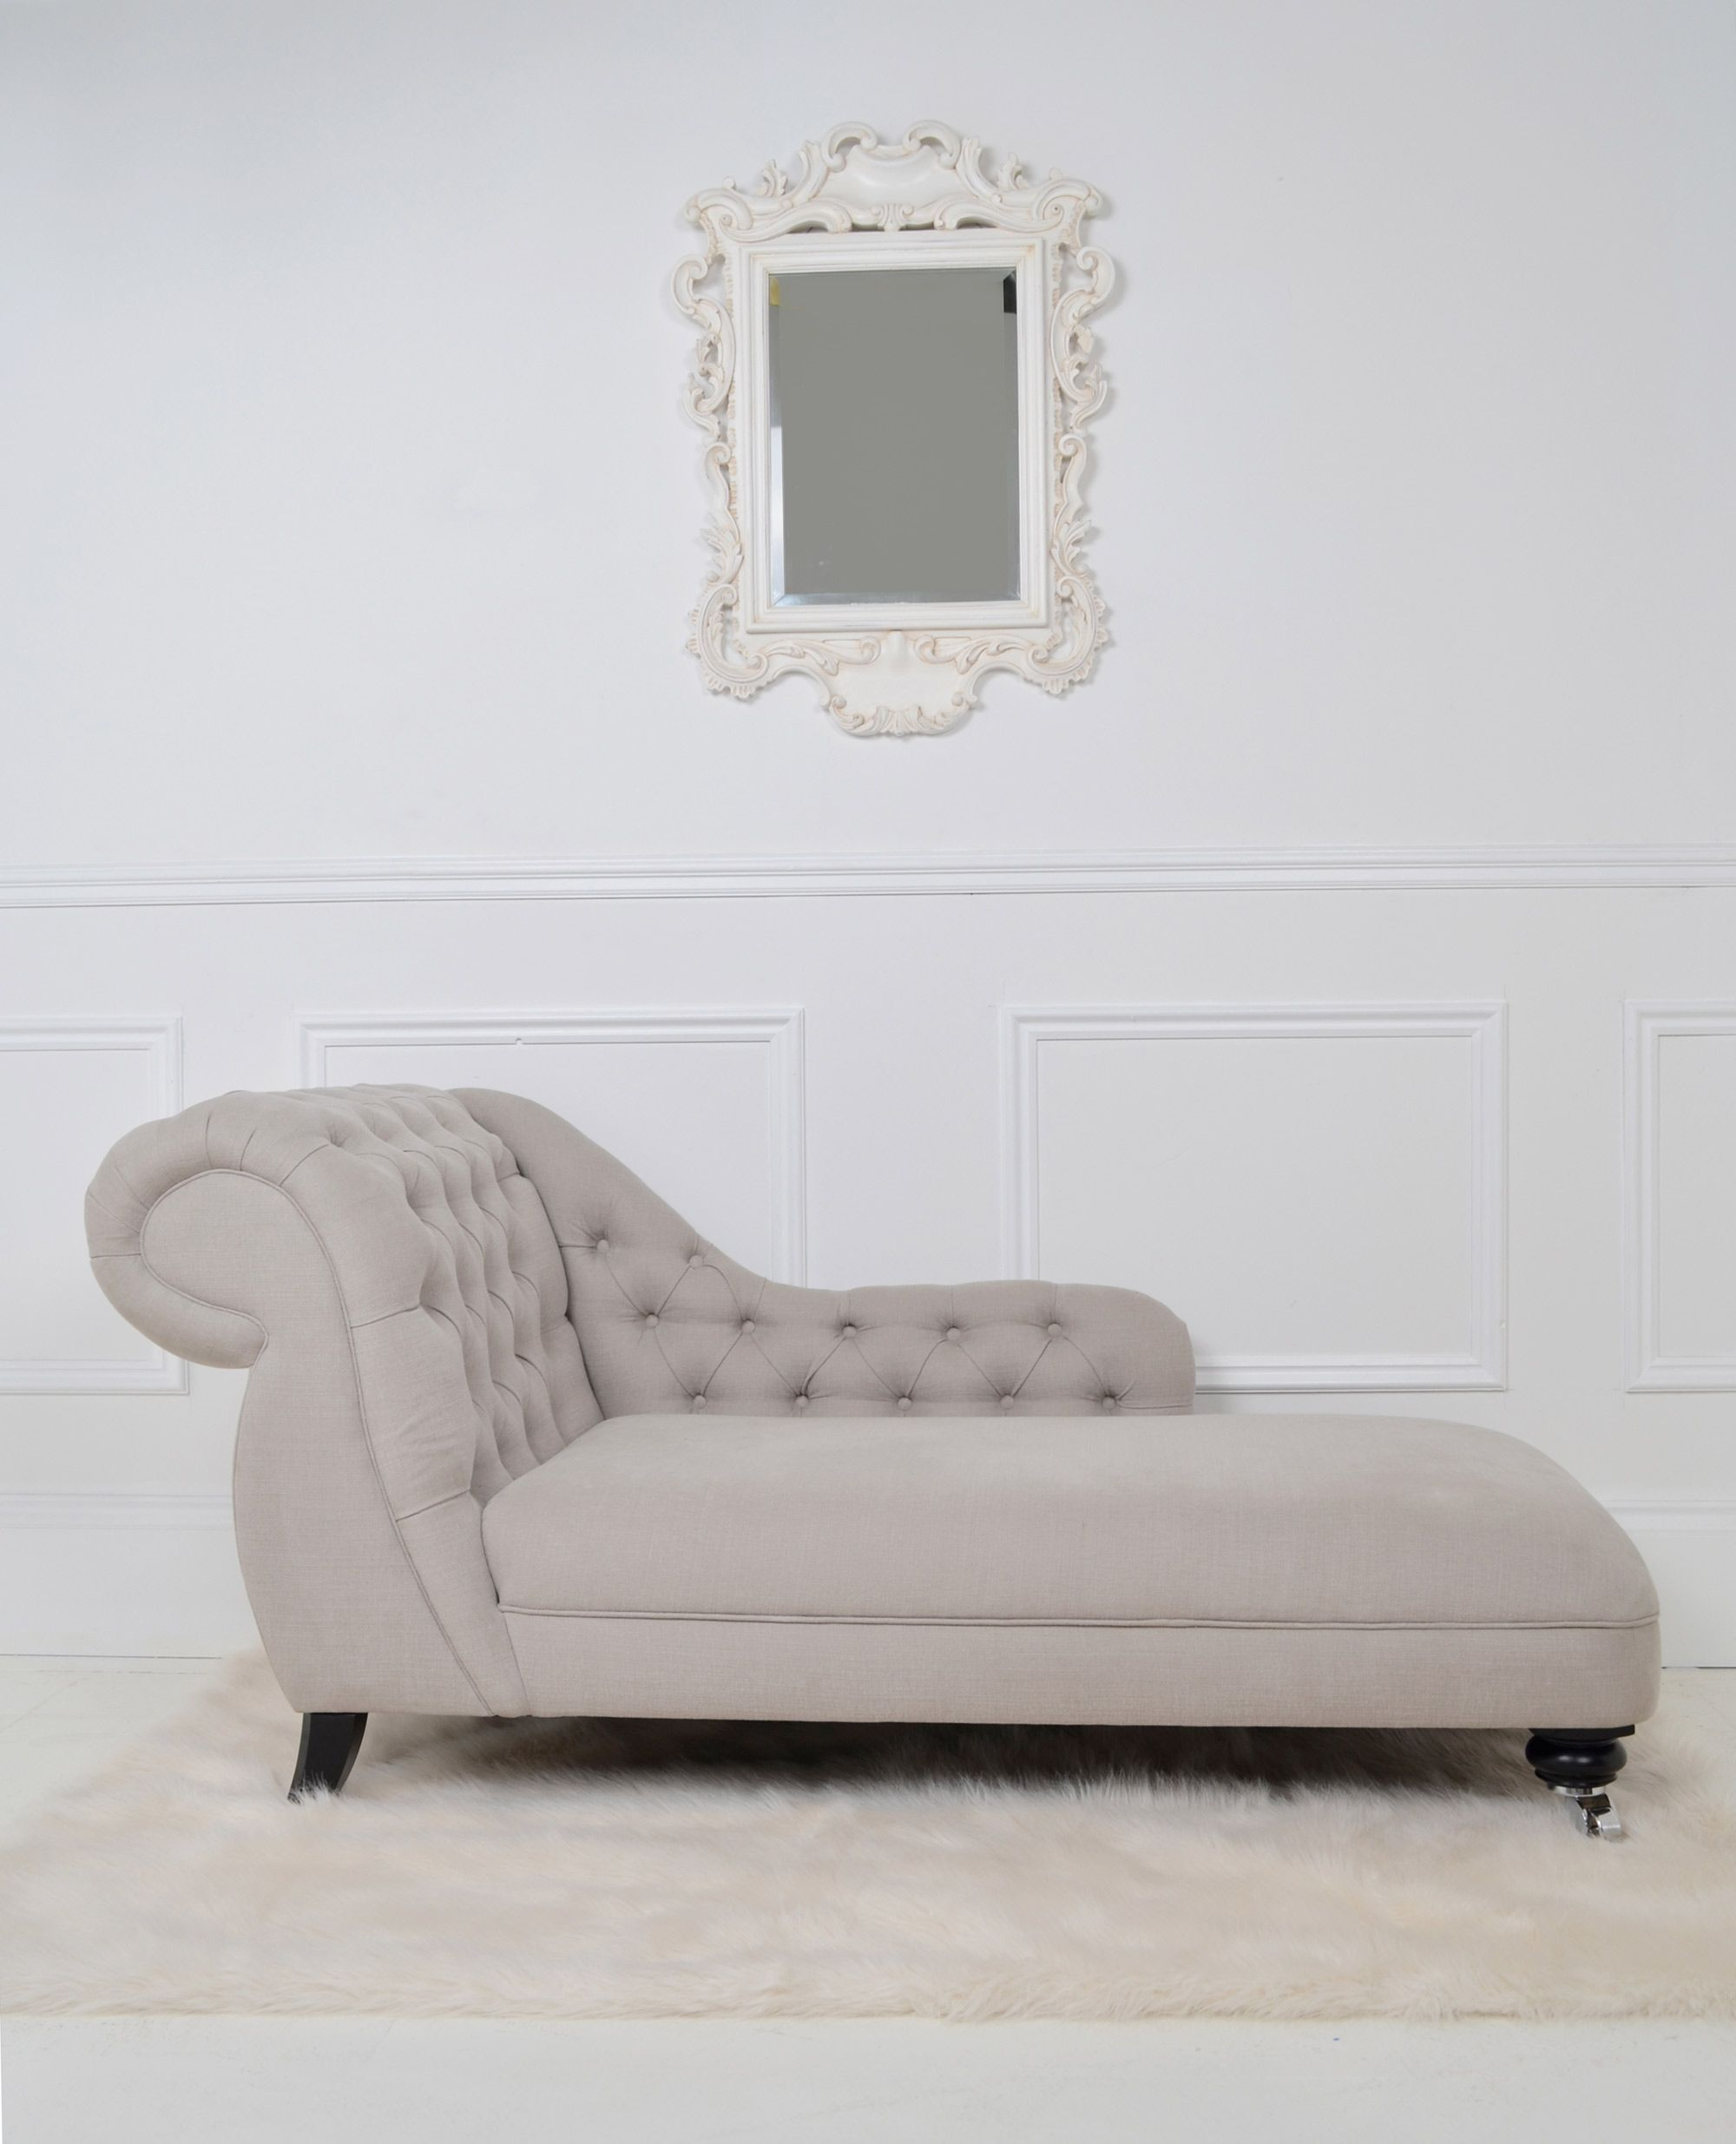 Lounge Sessel Extreme Lounging Laurent Chaise Longue Chaiselongue Lounge Chair Furniture Ph